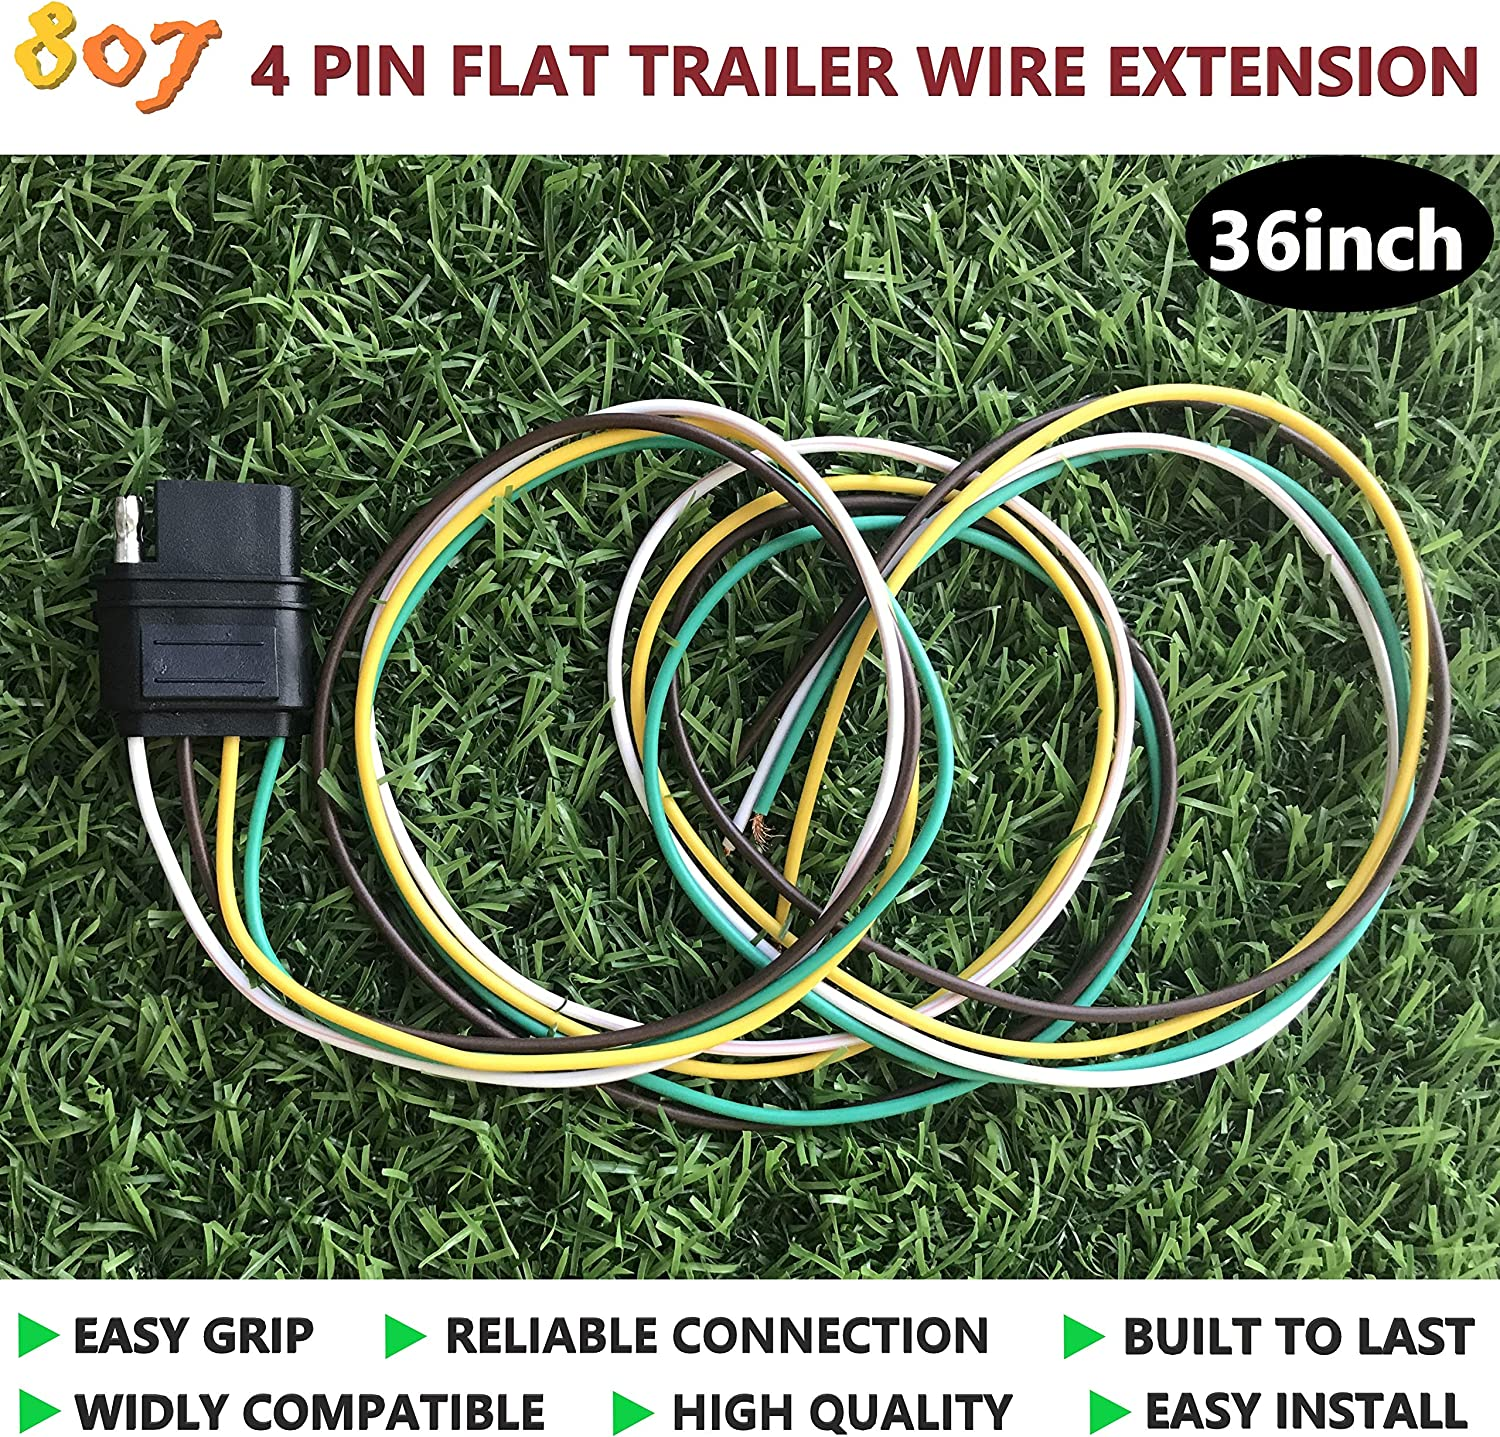 Trailer Wiring Diagram 4 Way Flat from images-na.ssl-images-amazon.com